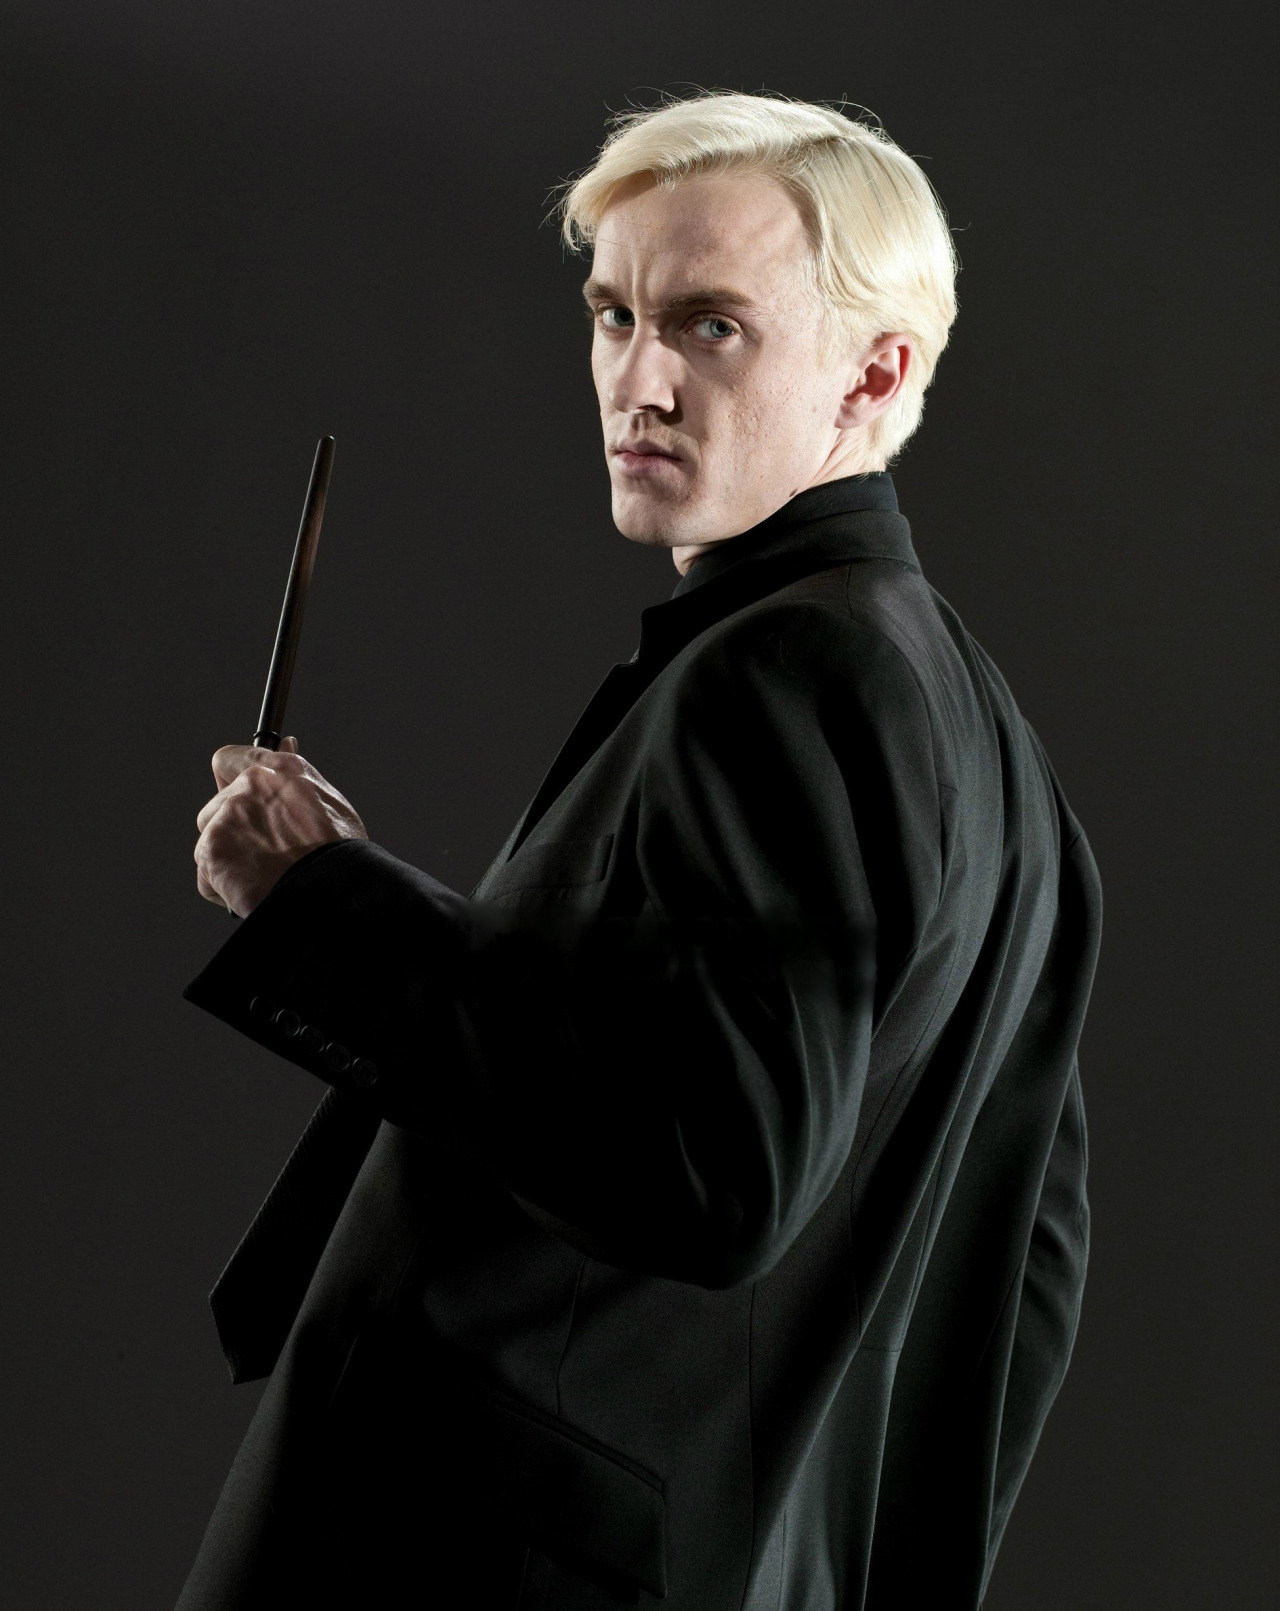 Apologise, but, Harry potter draco malfoy are not